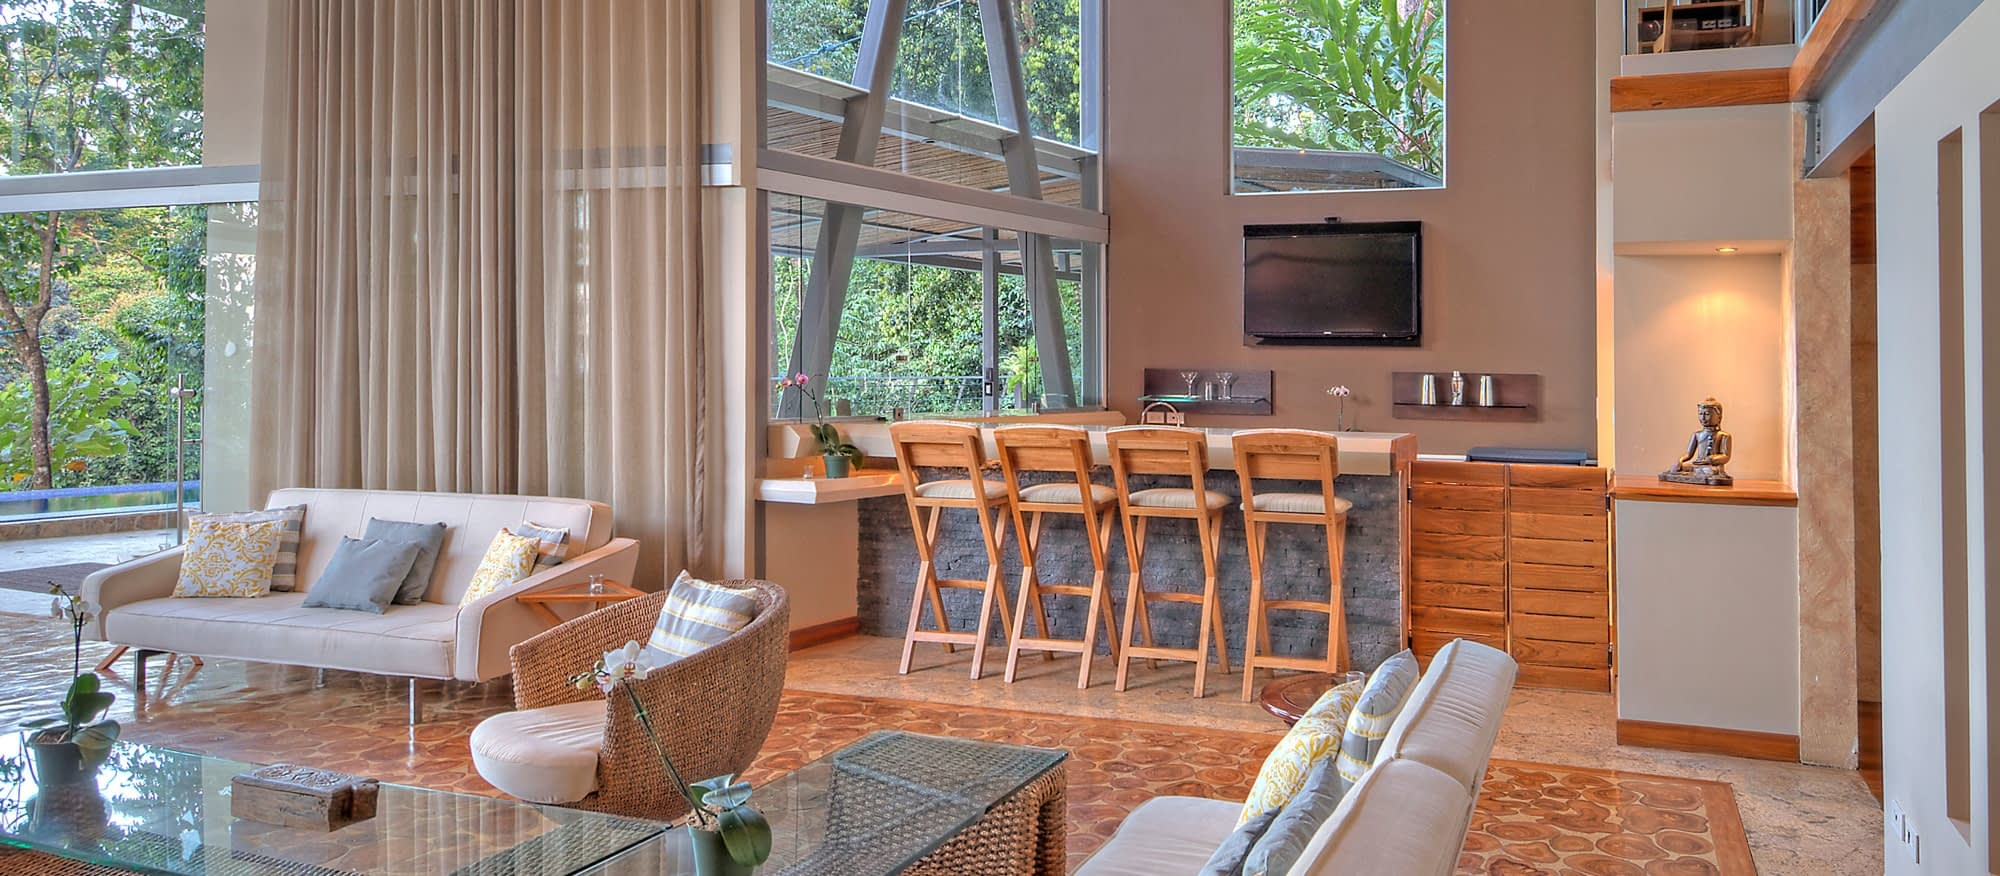 social areas for private group villas in costa rica